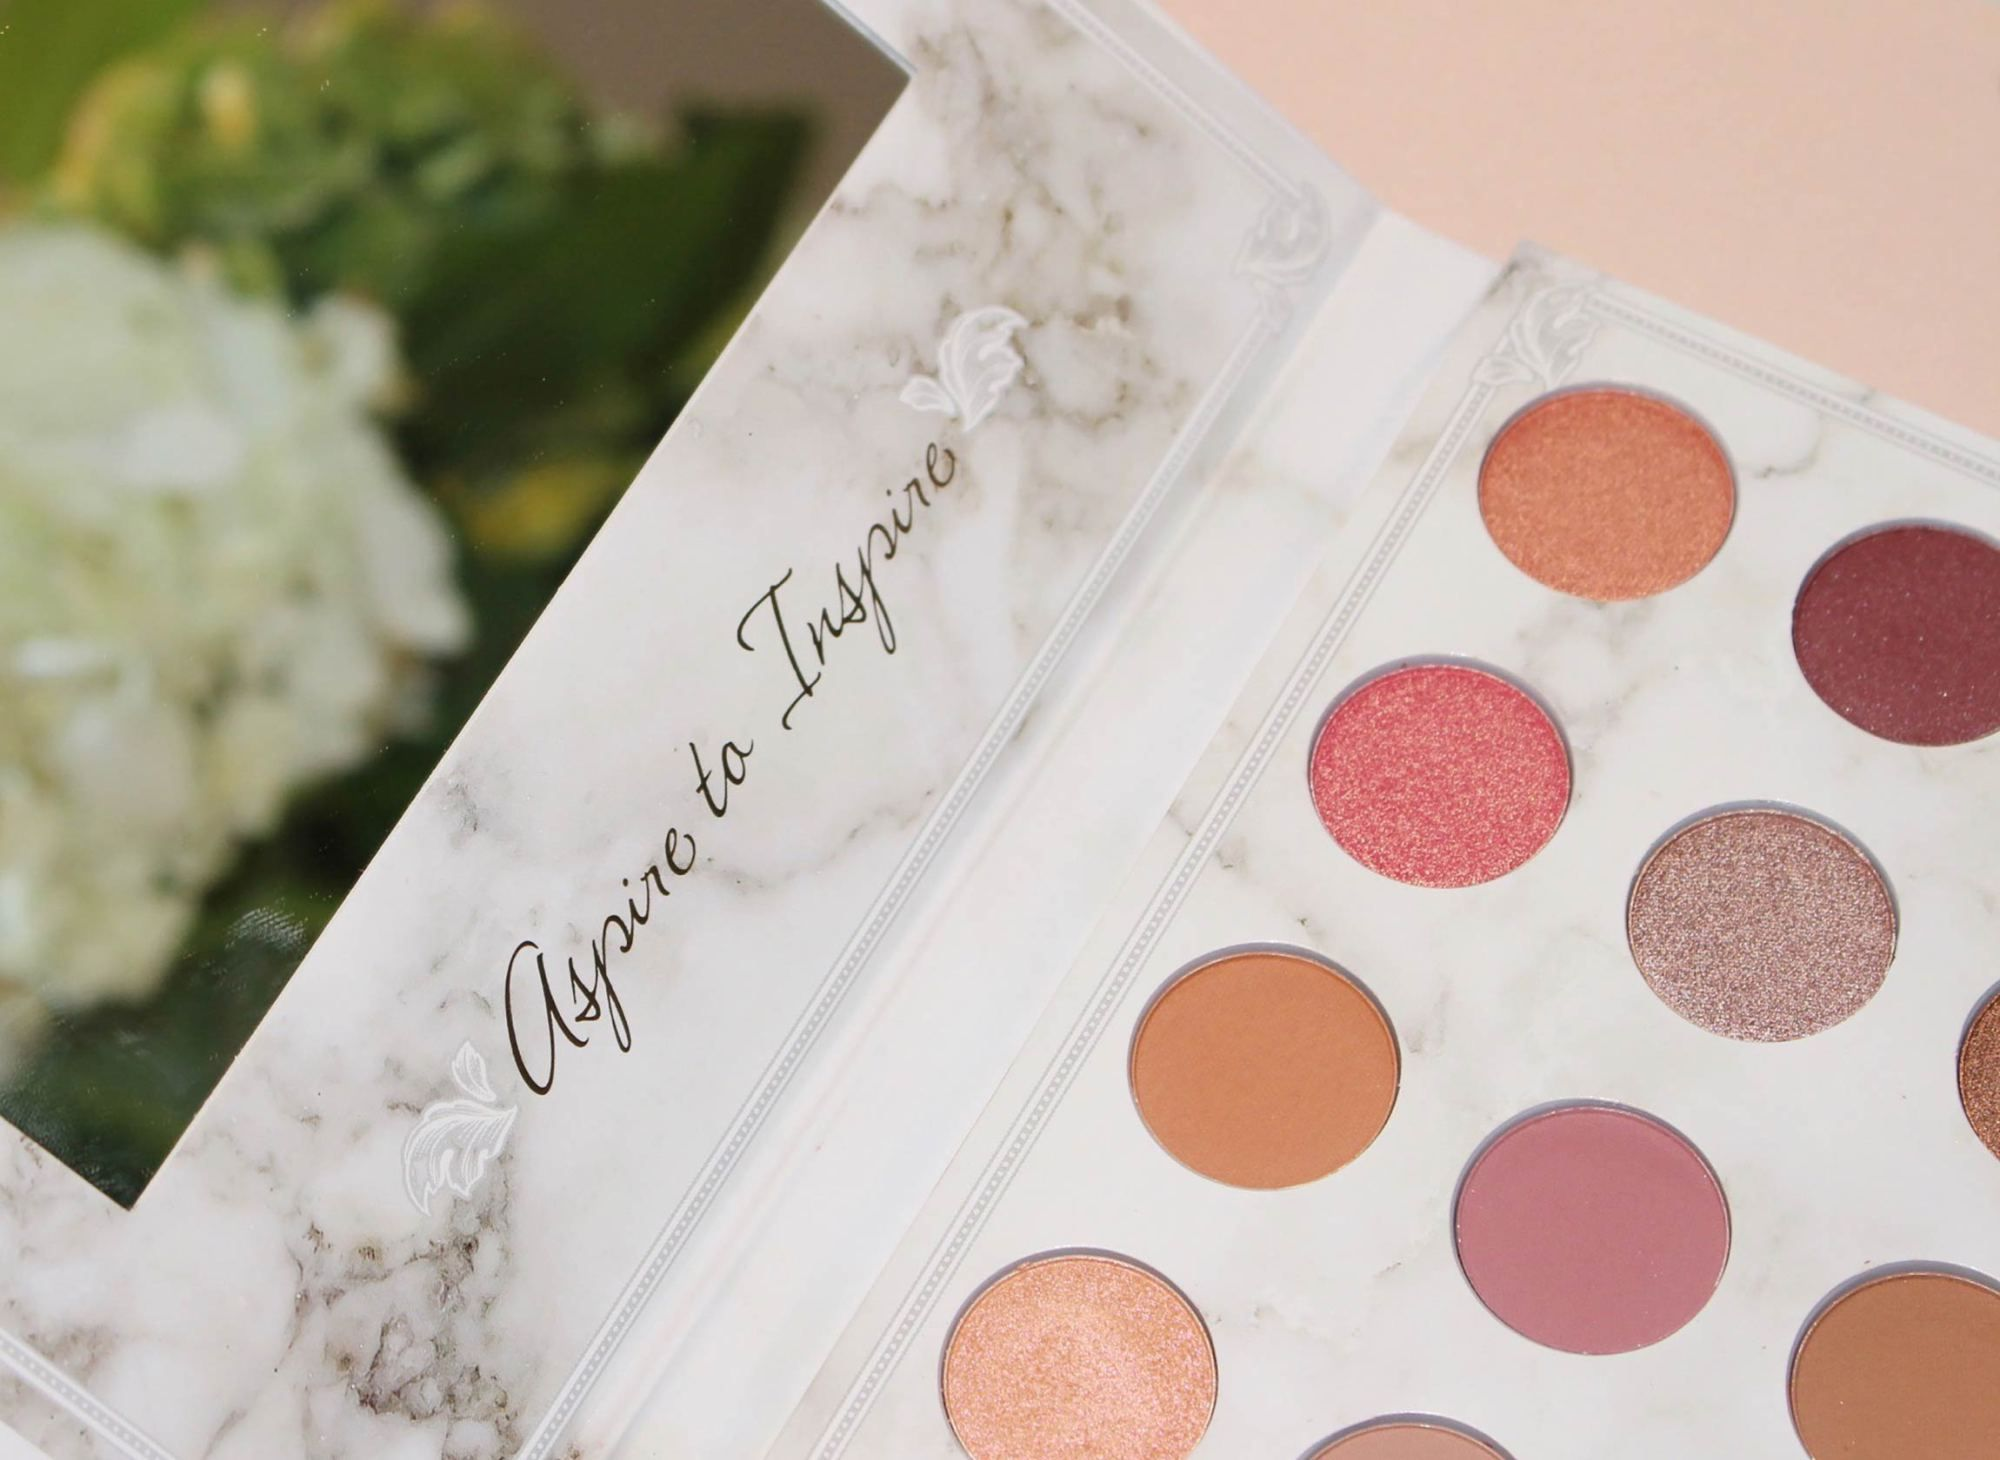 Carli Bybel Deluxe Edition Palette (With images) Makeup